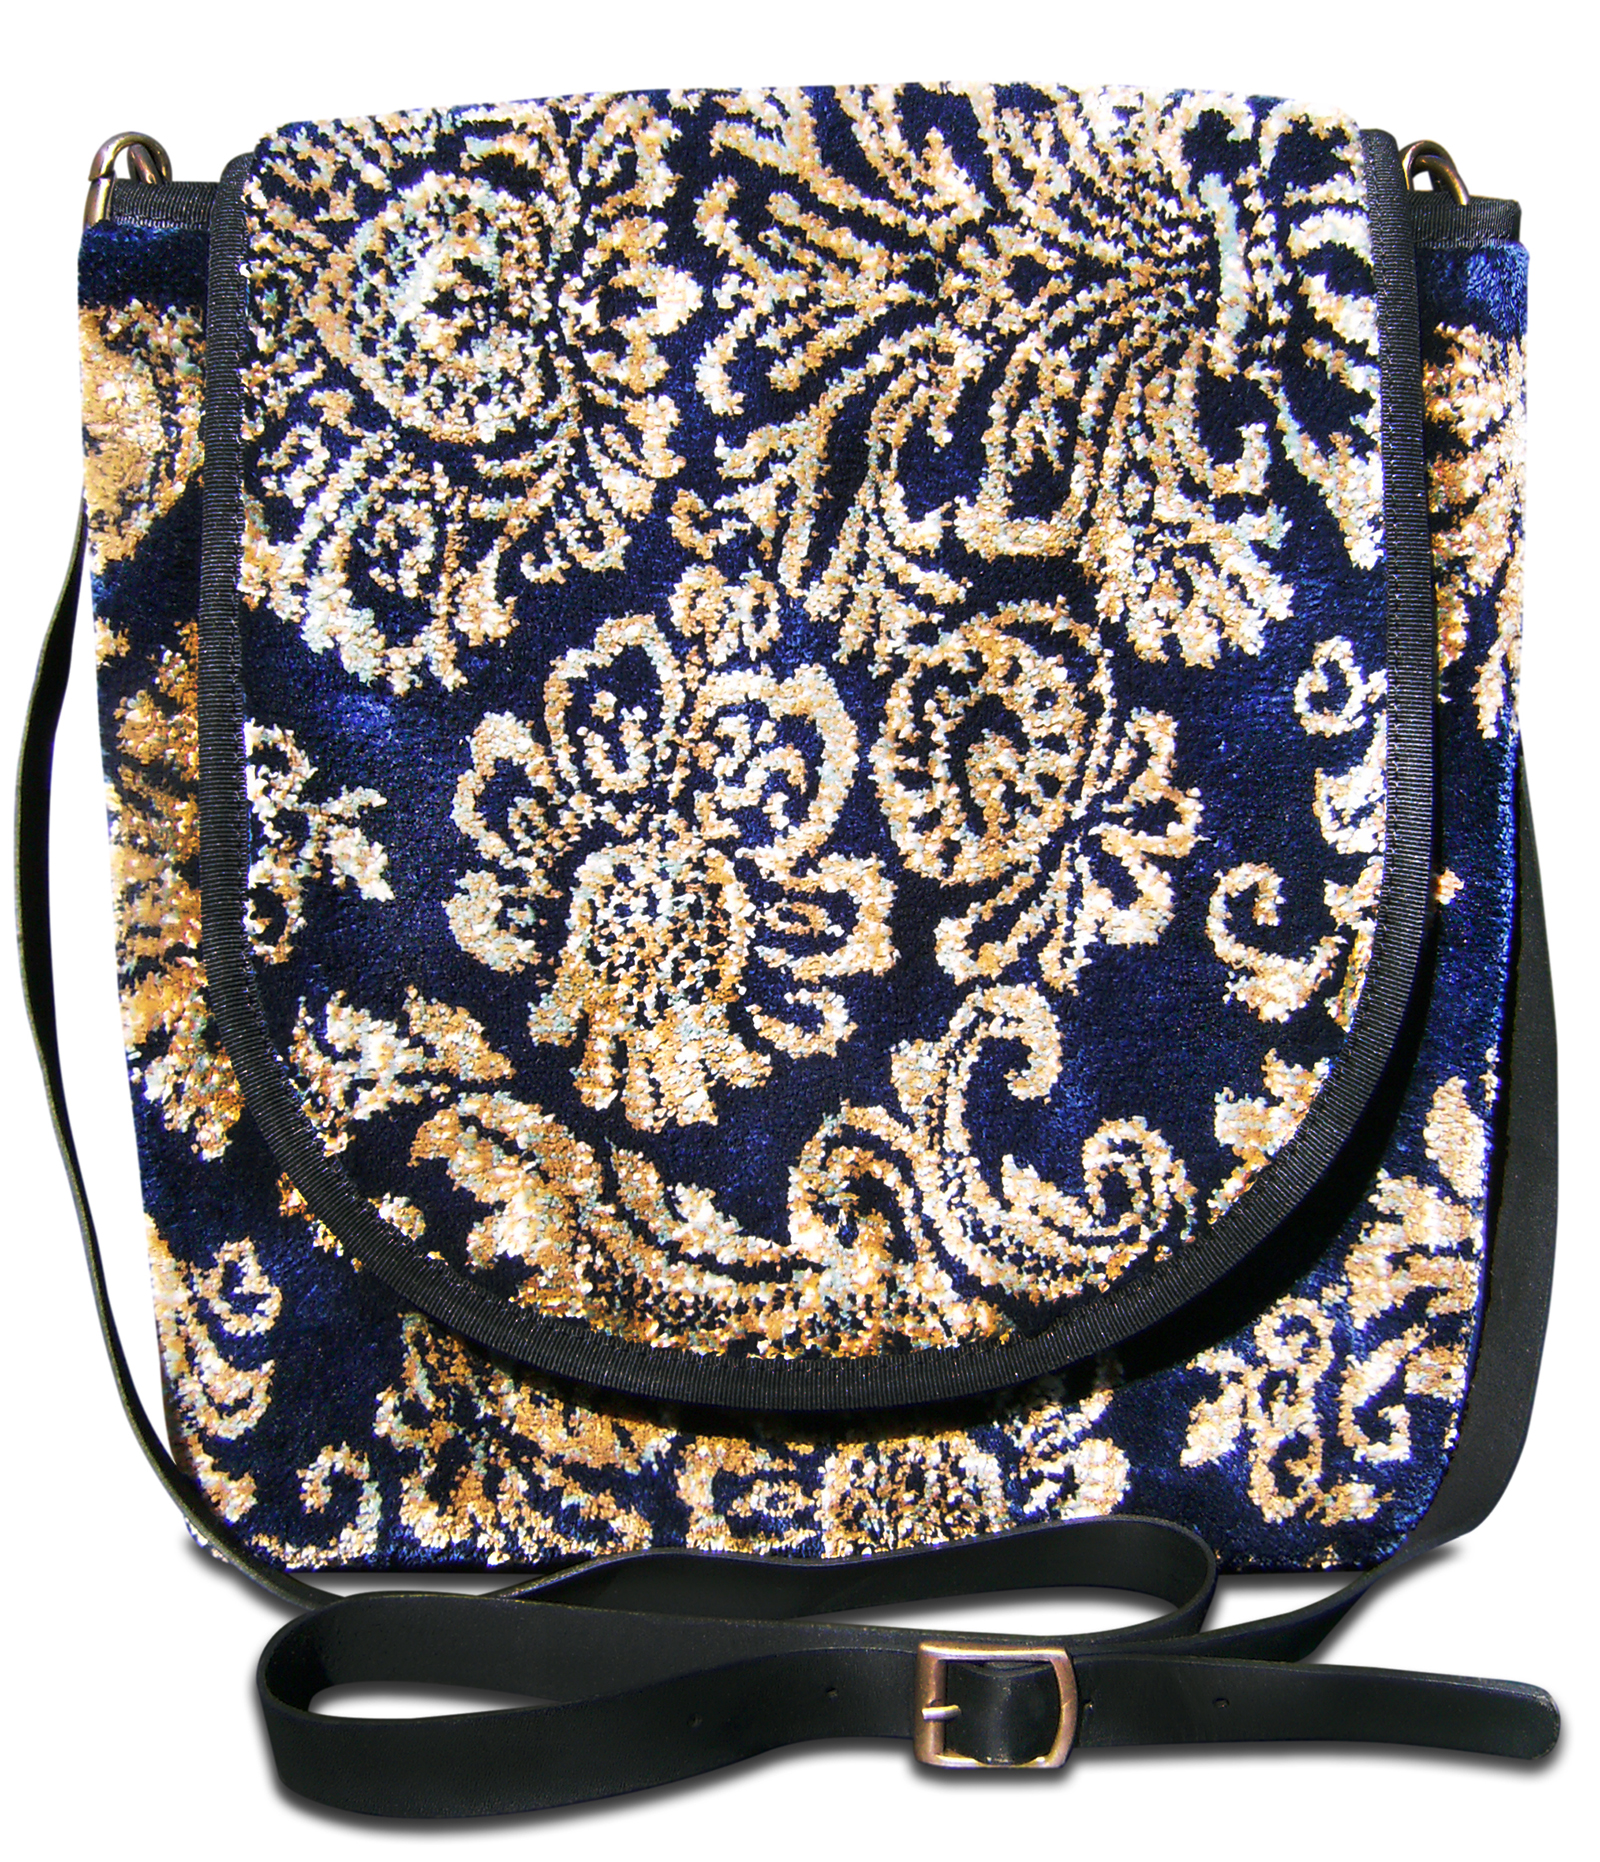 Image of EXPRESS Décor Navy  Victorian Carpet Bag.